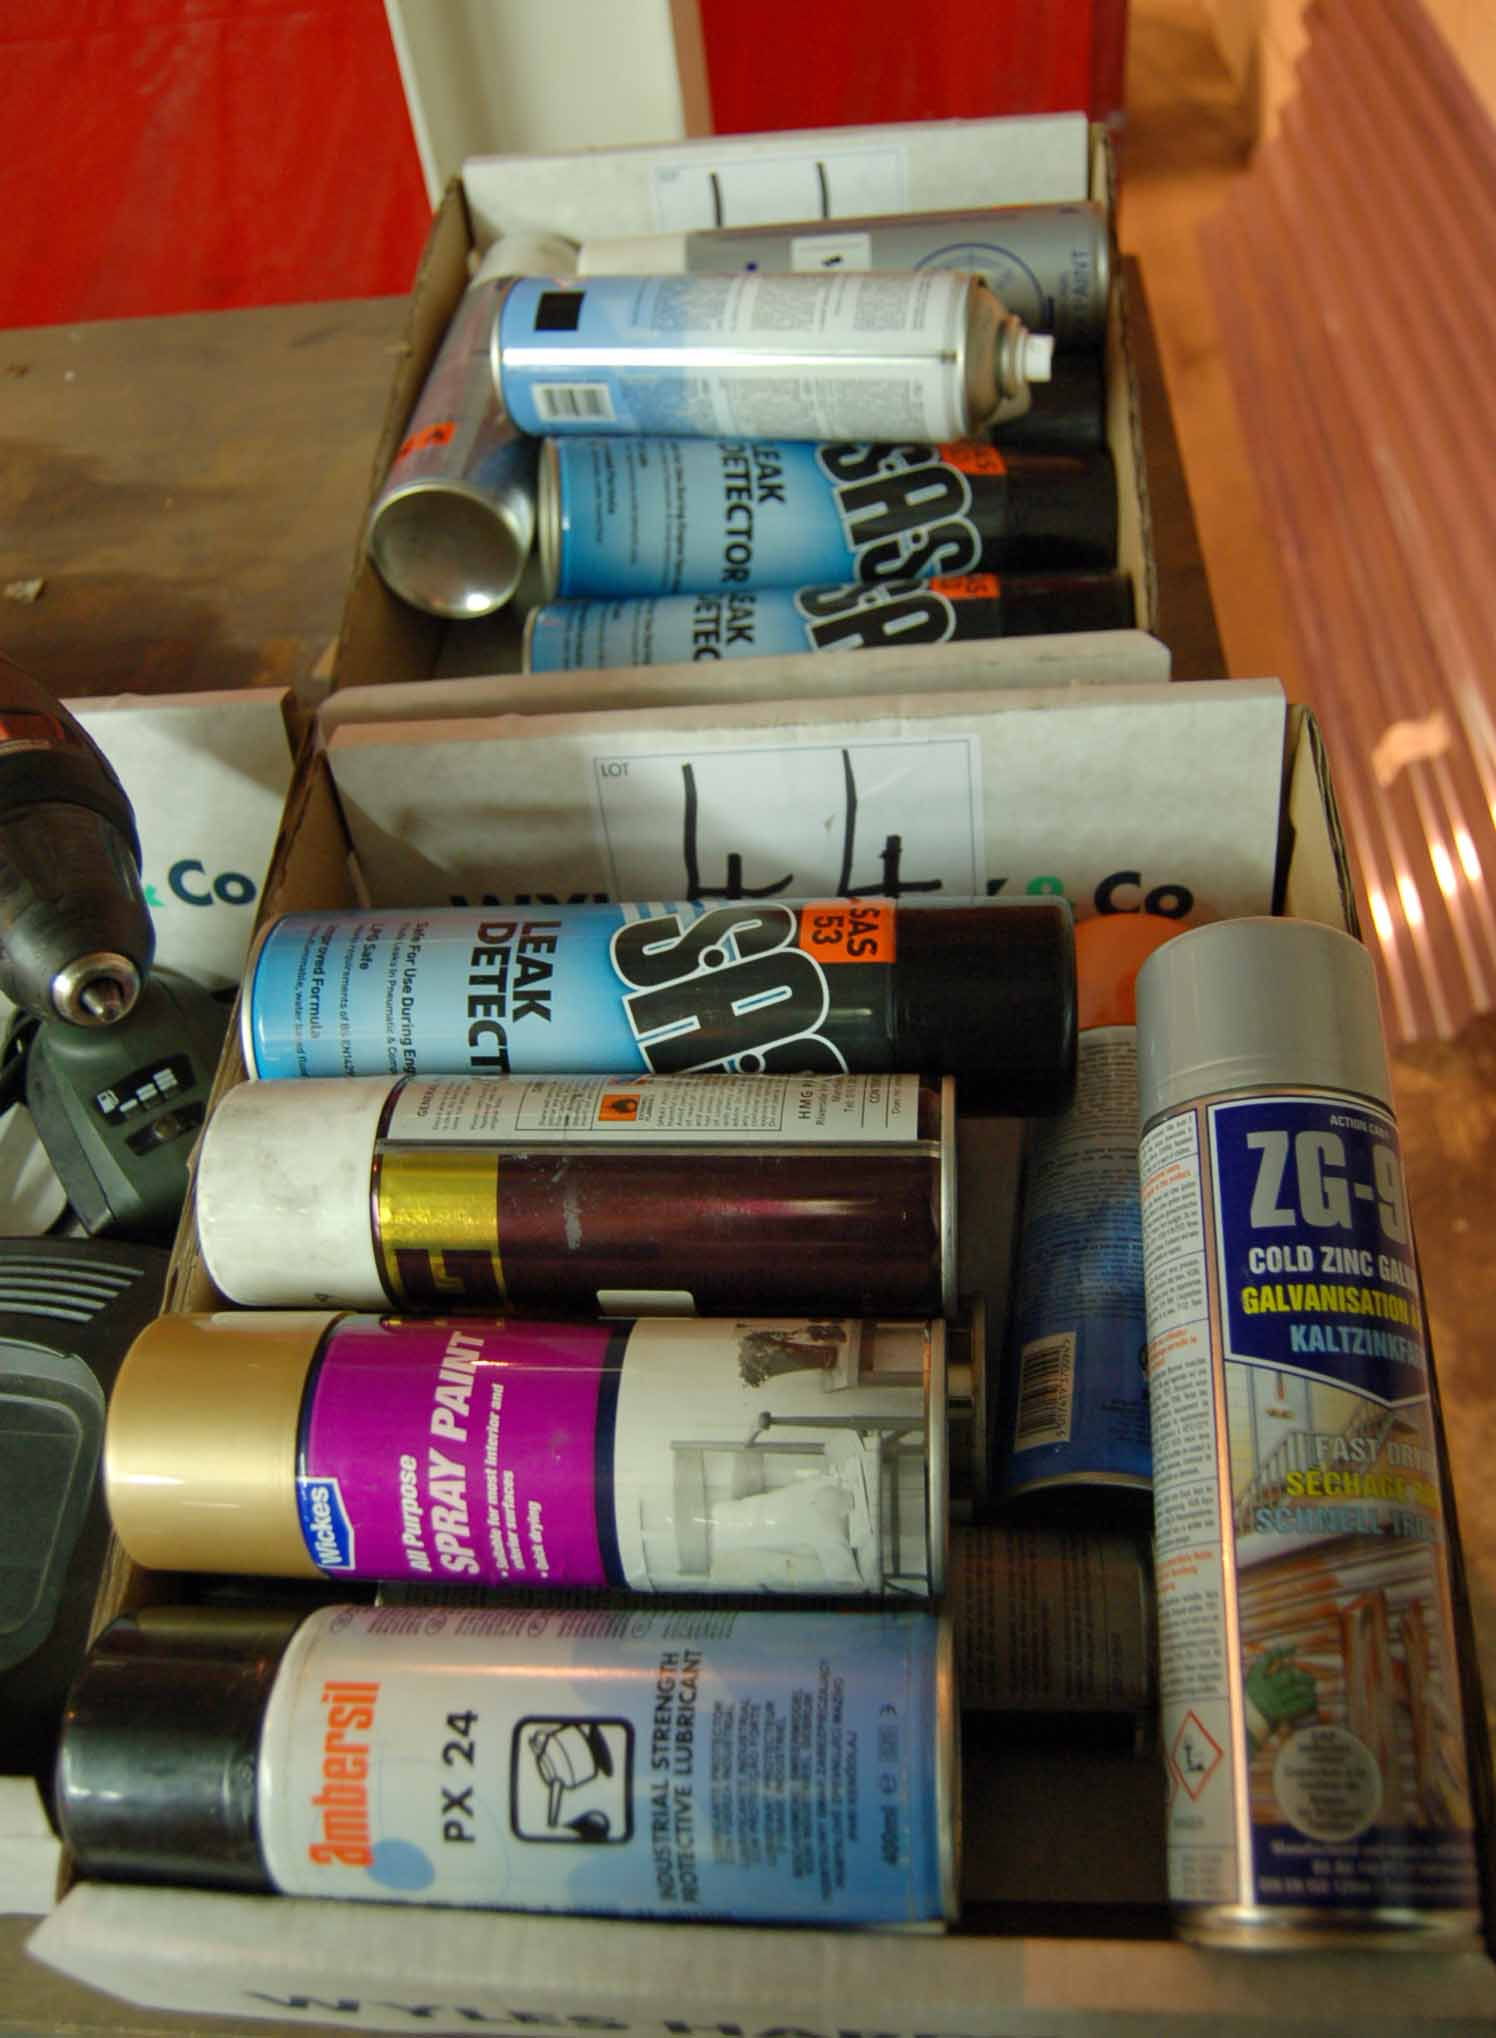 Lot 44 - Two Boxes of Aerosols Including Paint, Leak Detector Primer (As Photographed)